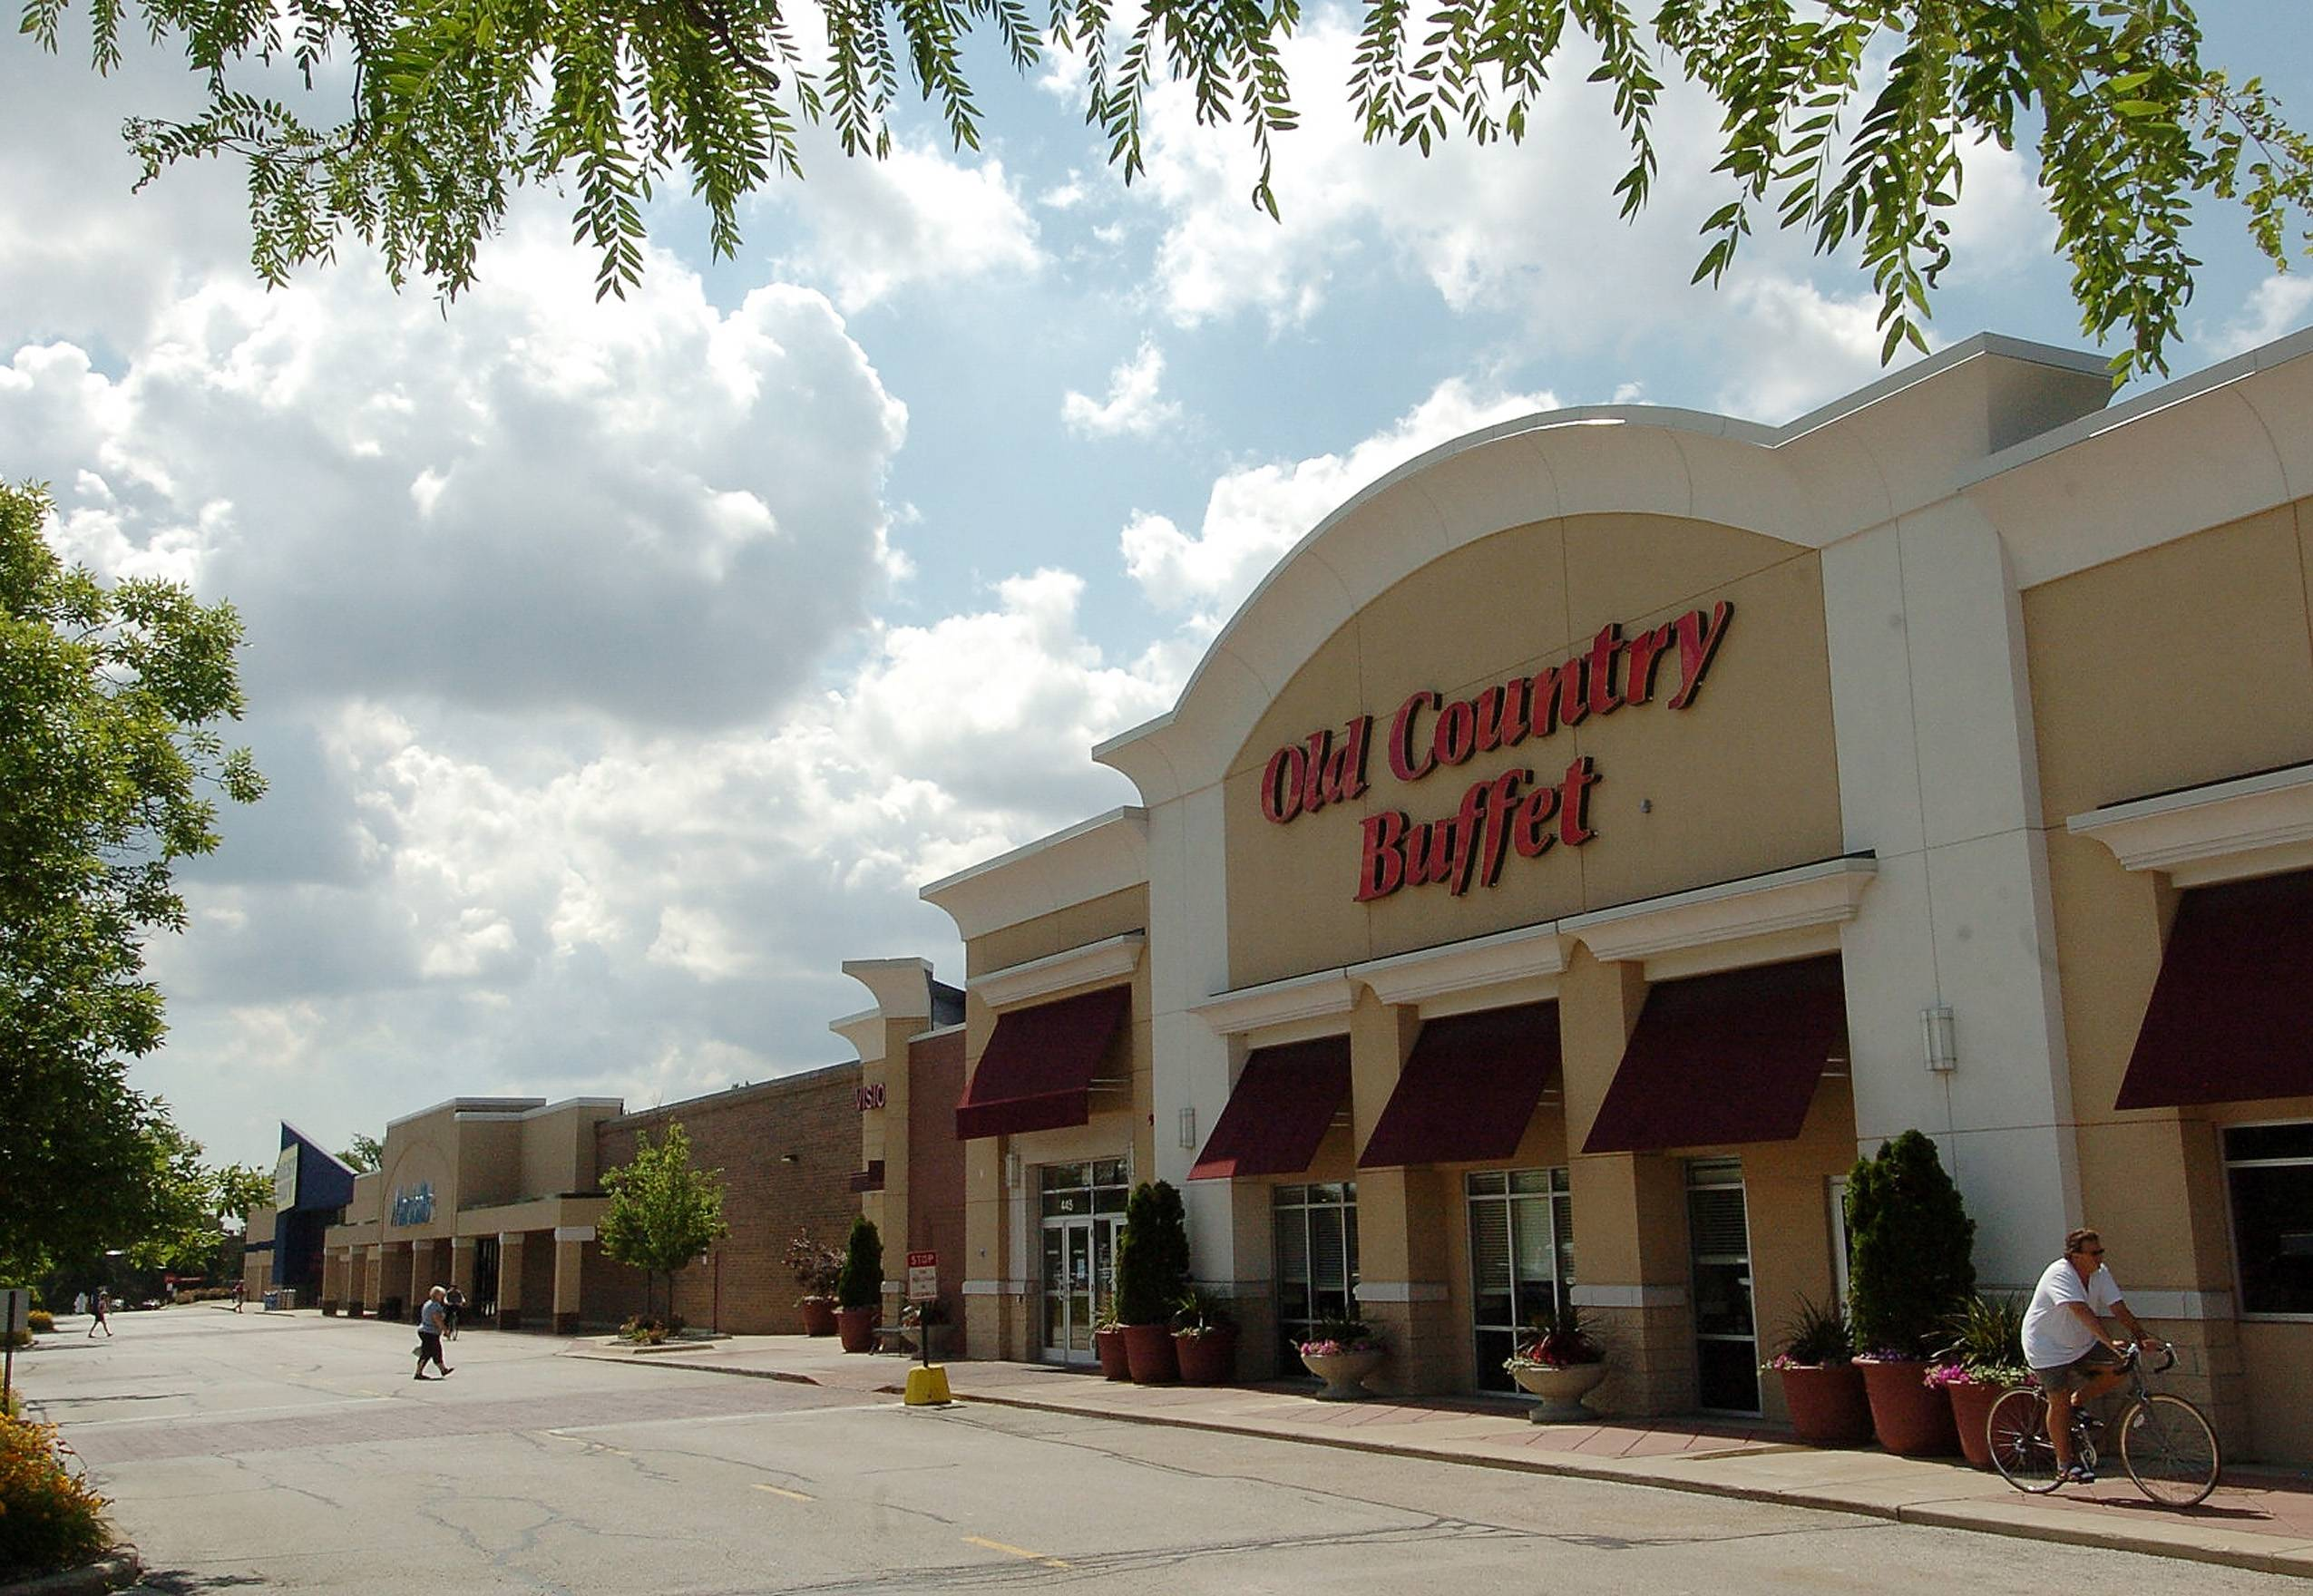 Underperforming Old Country Buffet restaurants nationwide are being shuttered, but this one in Arlington Heights survived.